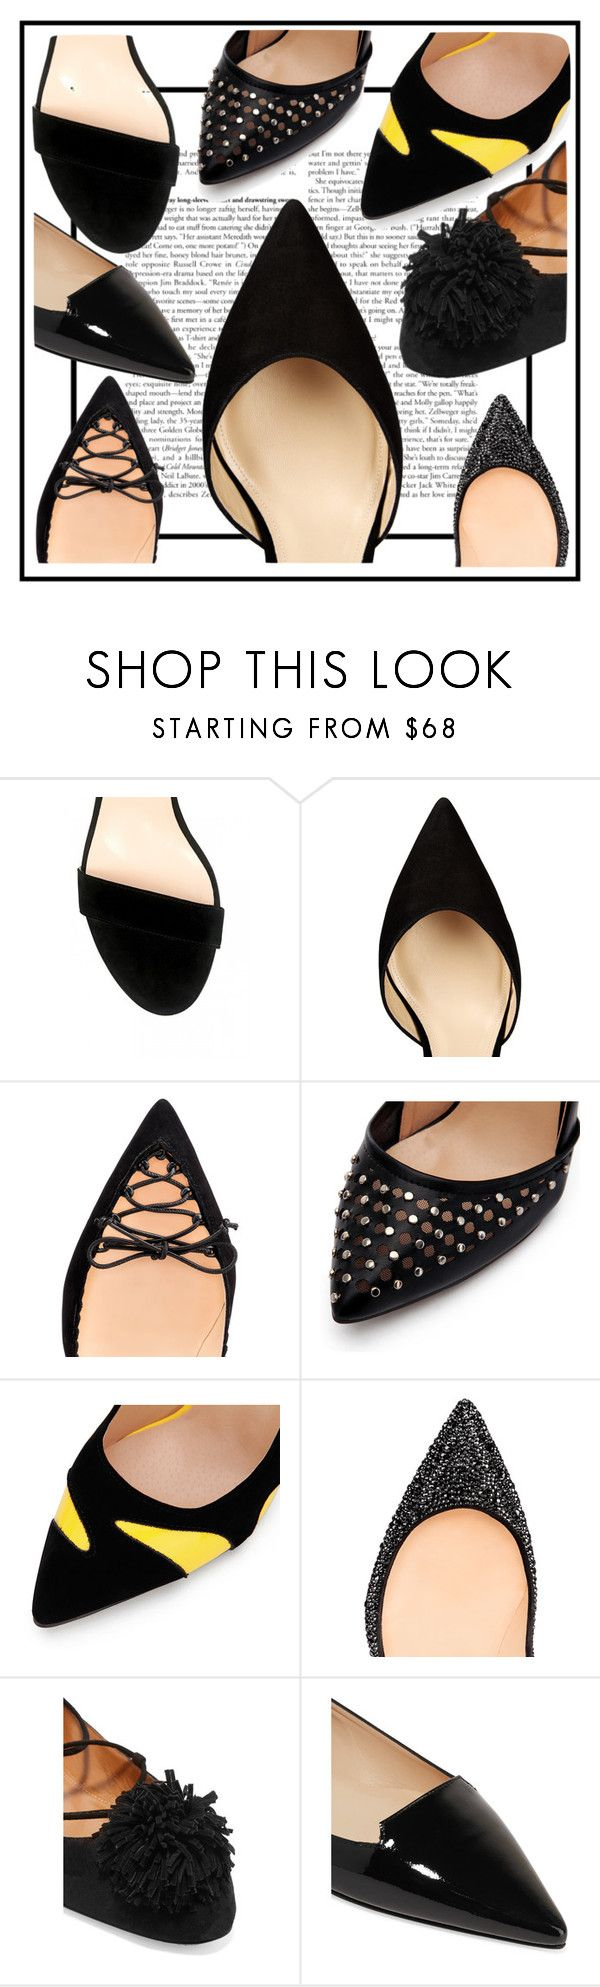 """Untitled #91"" by madedinorog ❤ liked on Polyvore featuring Dee Keller, Paul Andrew, Christian Louboutin, Aquazzura and Jimmy Choo"